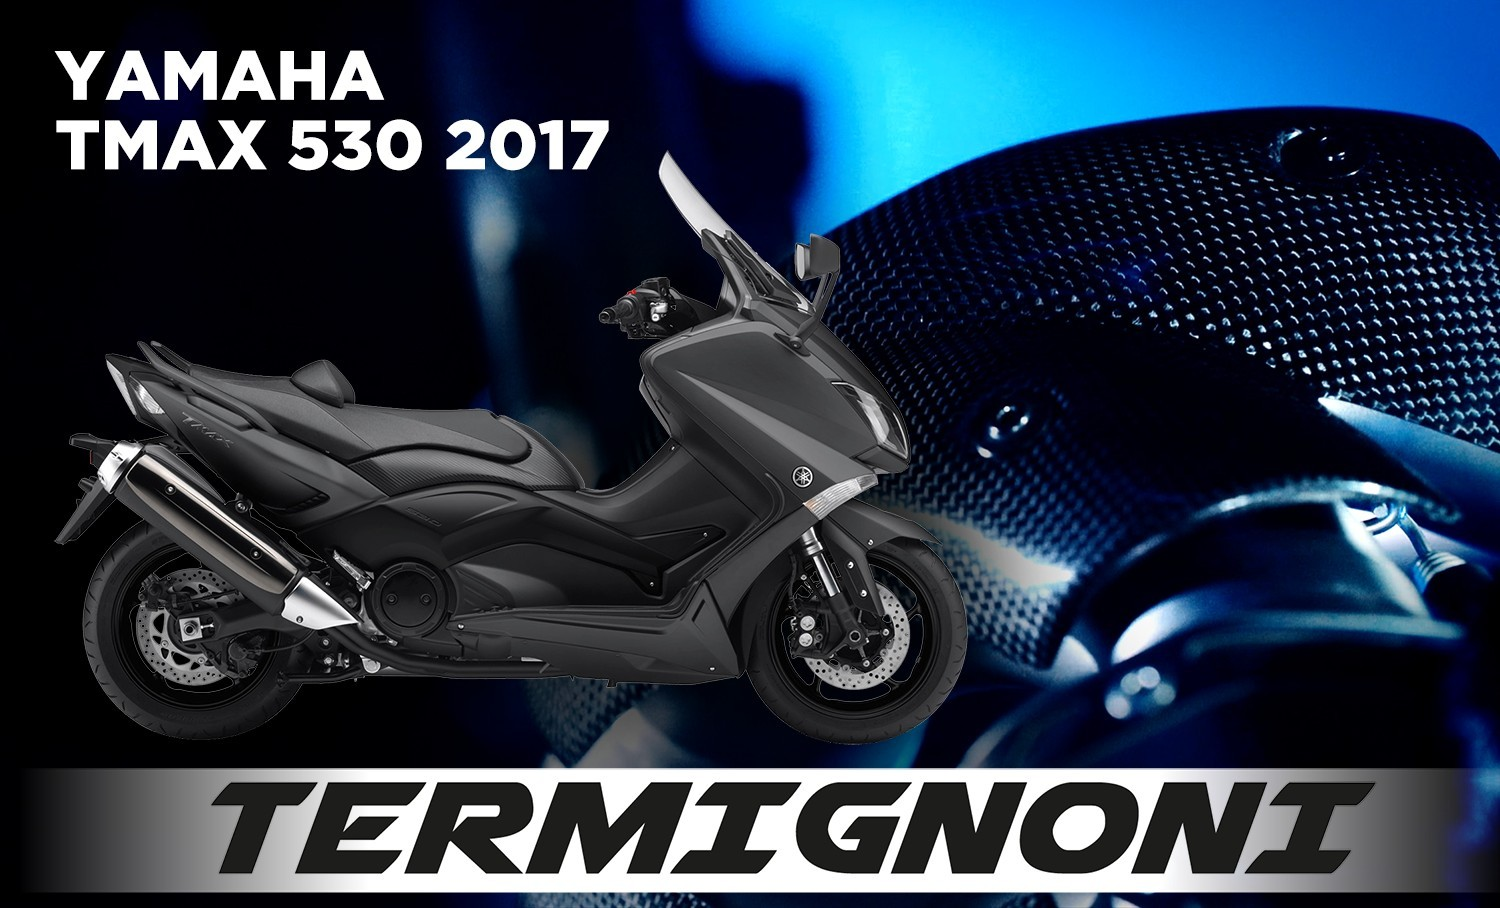 TMAX530 ABS 17 Y113 FDY